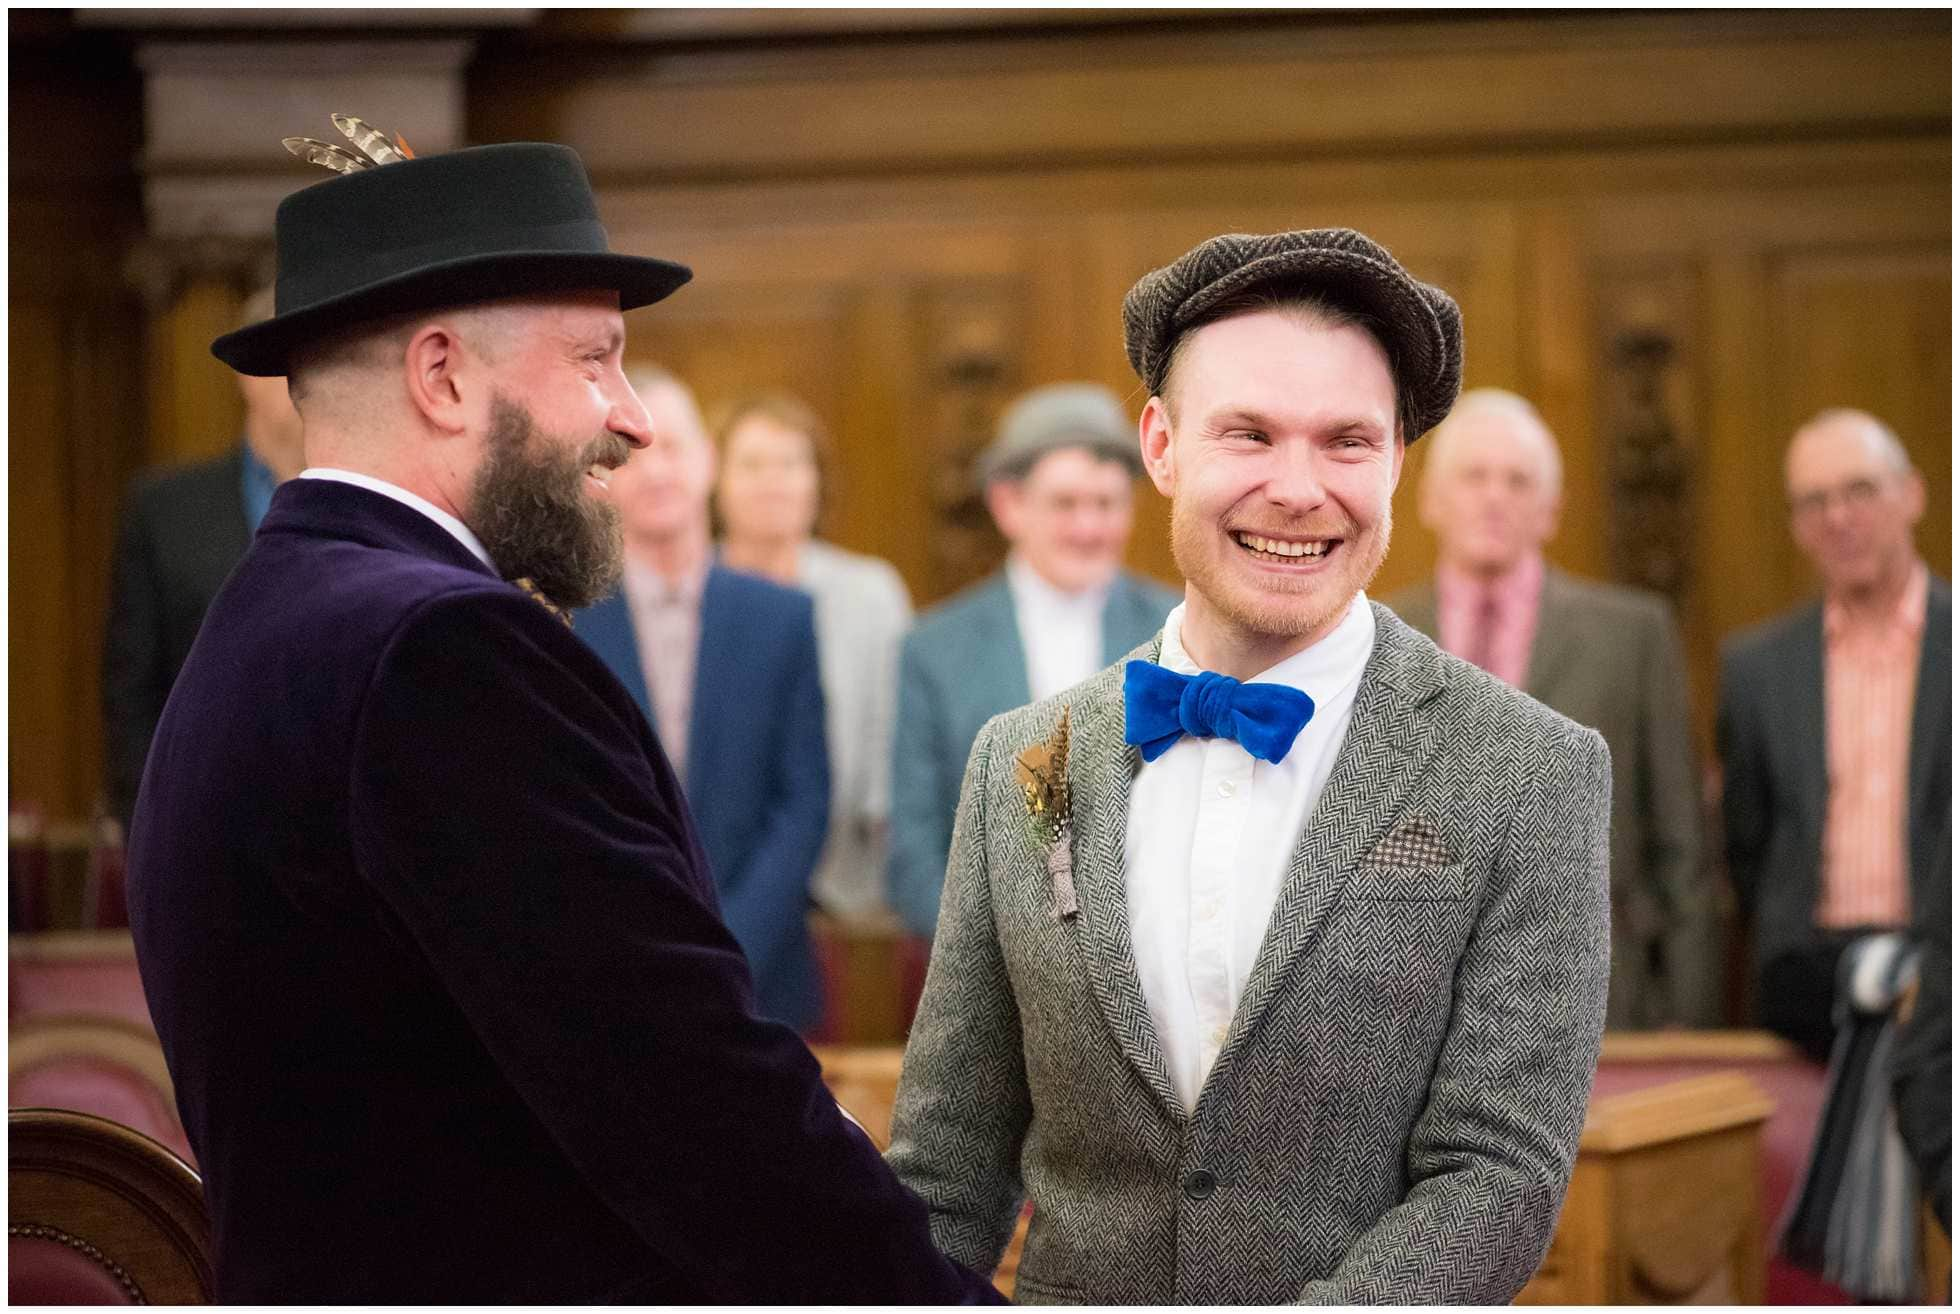 A happy groom with his happy groom